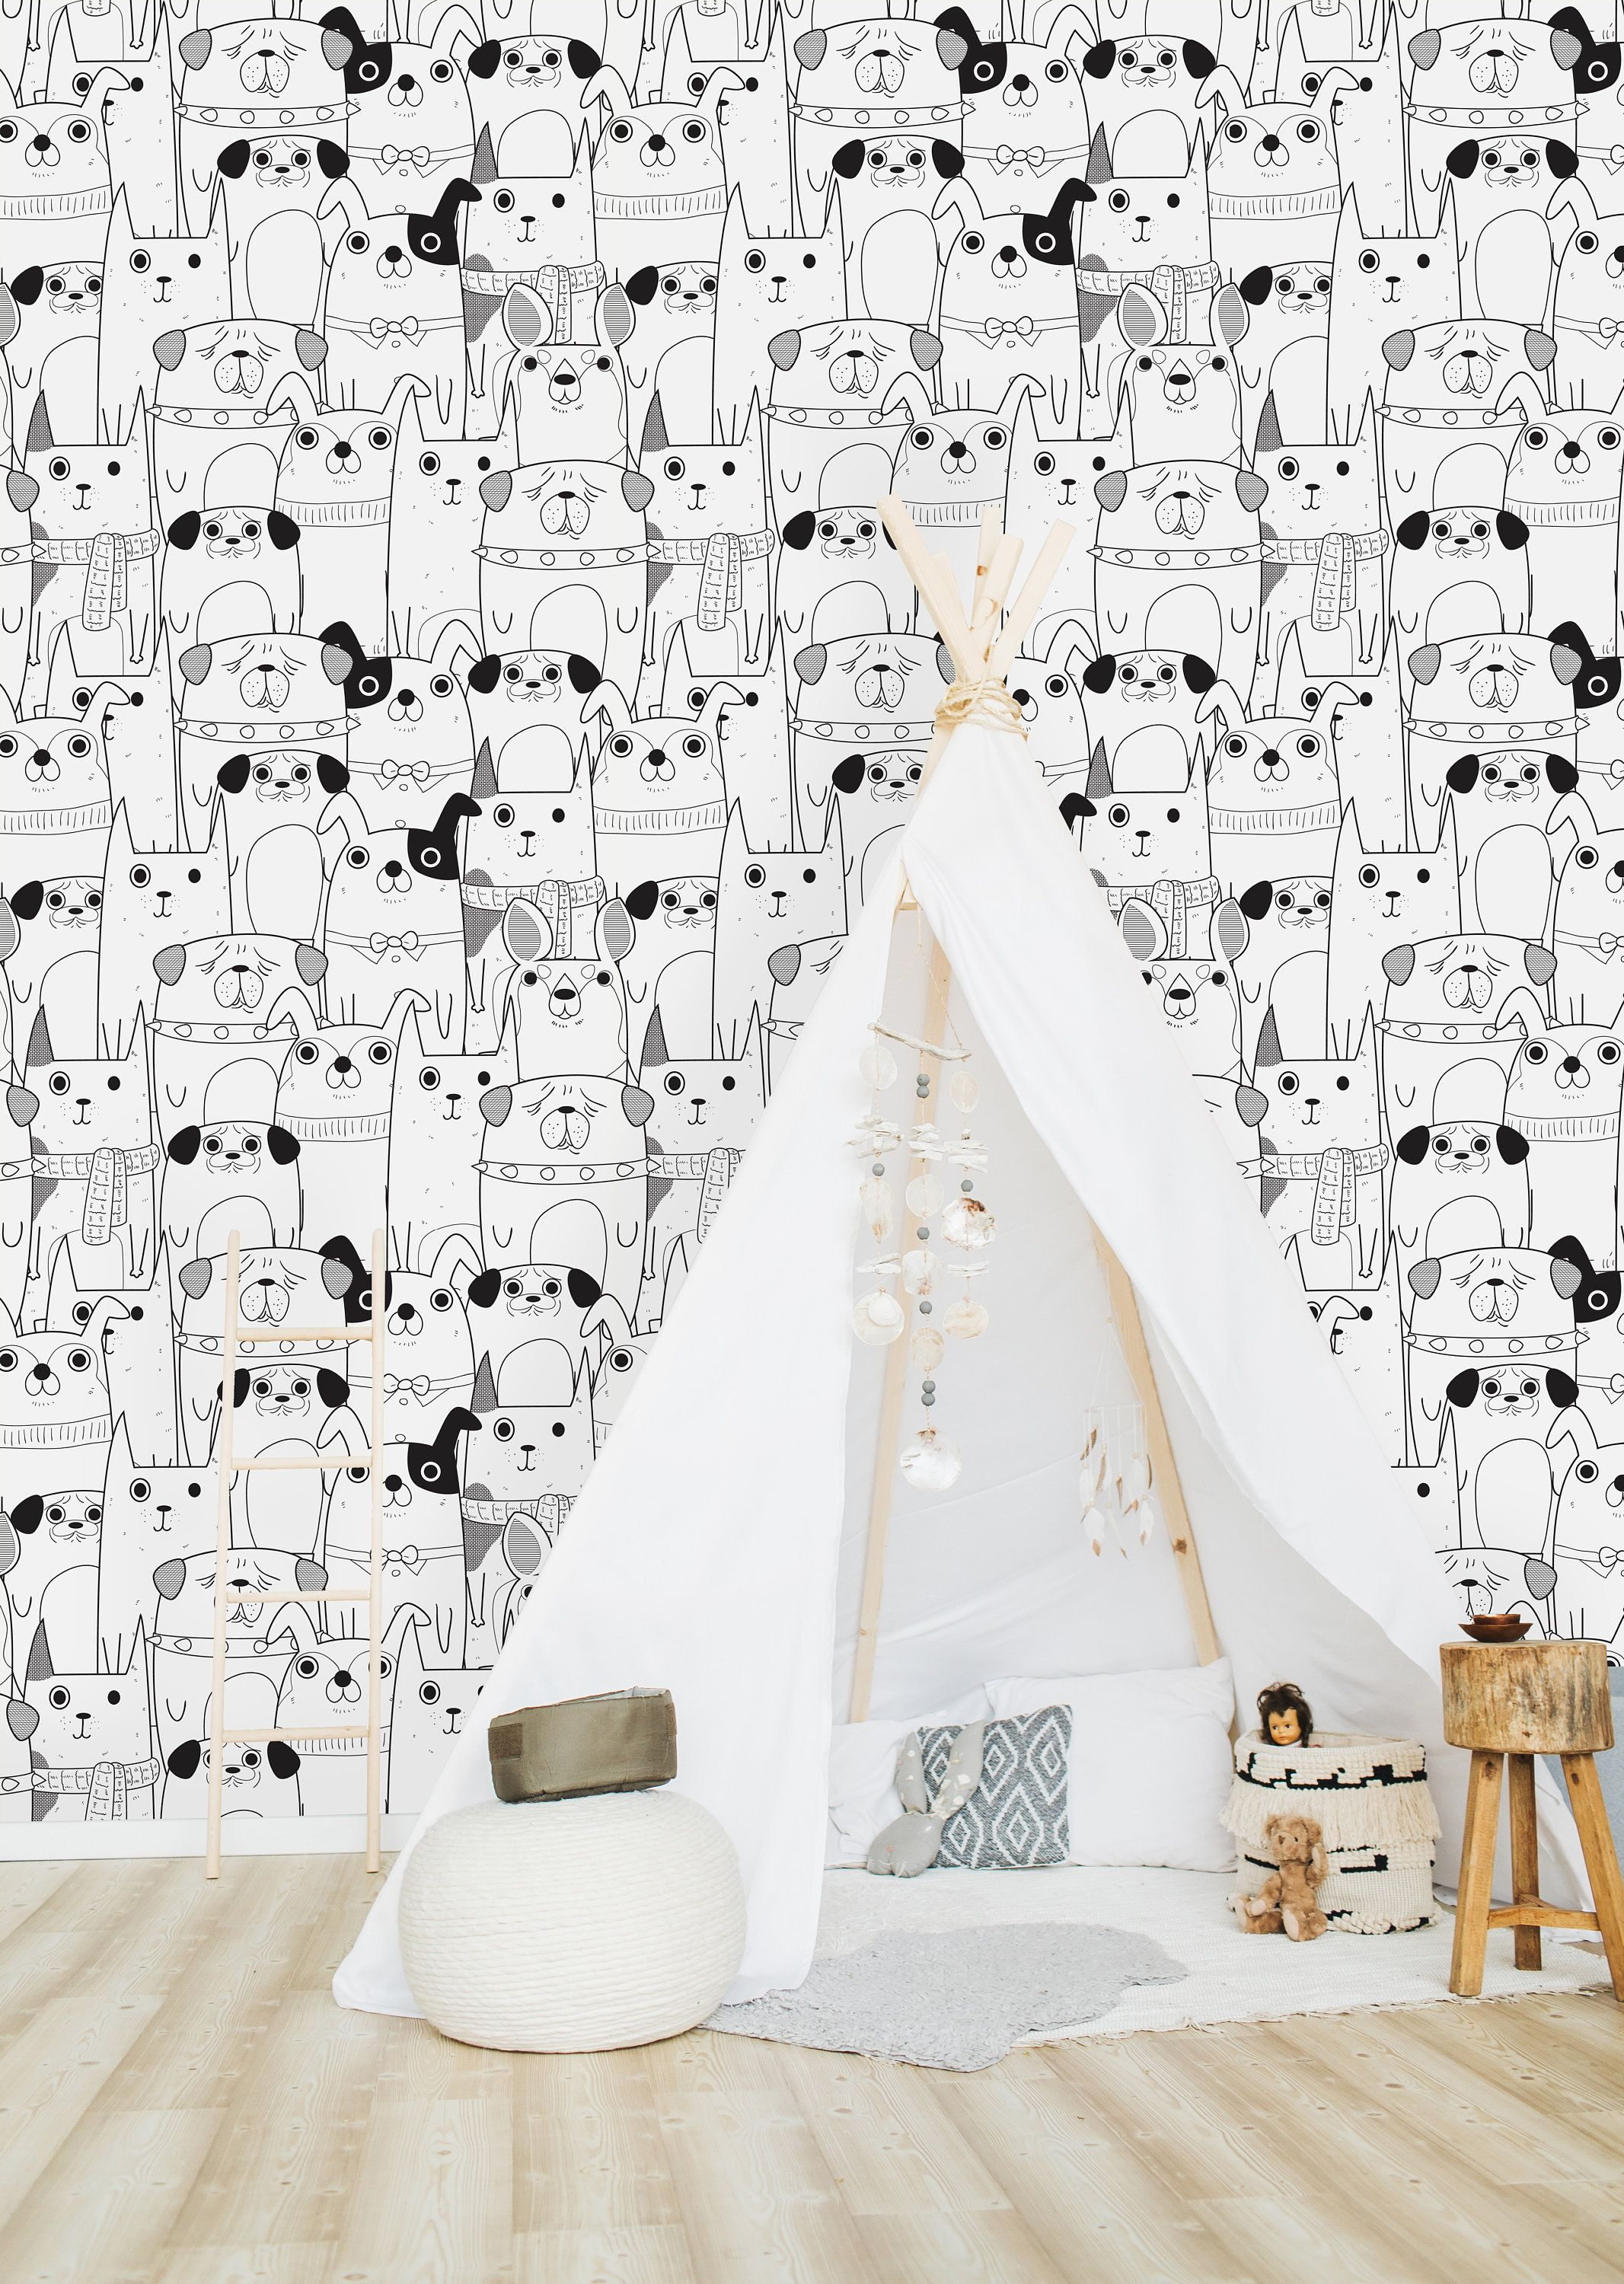 Black And White Dogs Wallpaper Peel And Stick Wallpaper Wall Etsy Dog Wallpaper Wall Wallpaper Peel And Stick Wallpaper